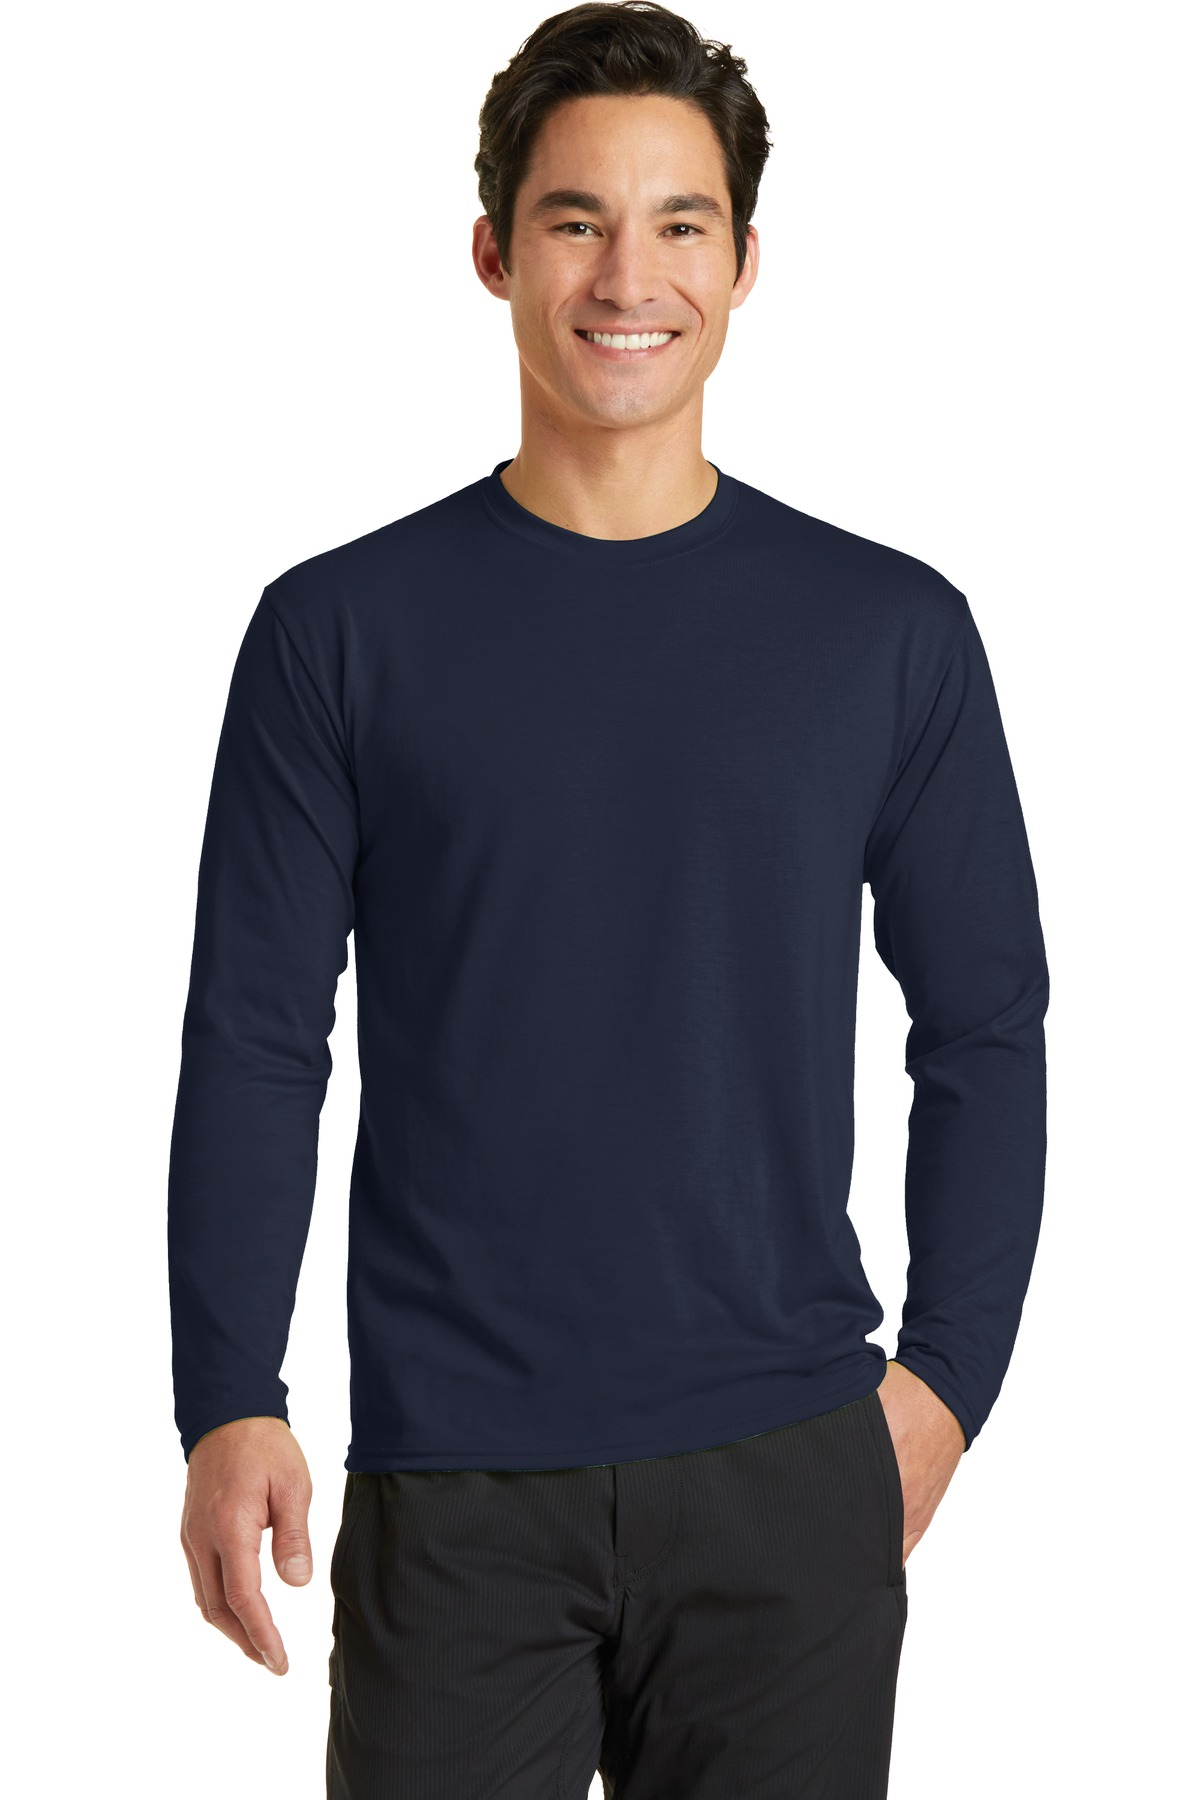 Port & Company  PC381LS - Long Sleeve Essential Blended Performance Tee